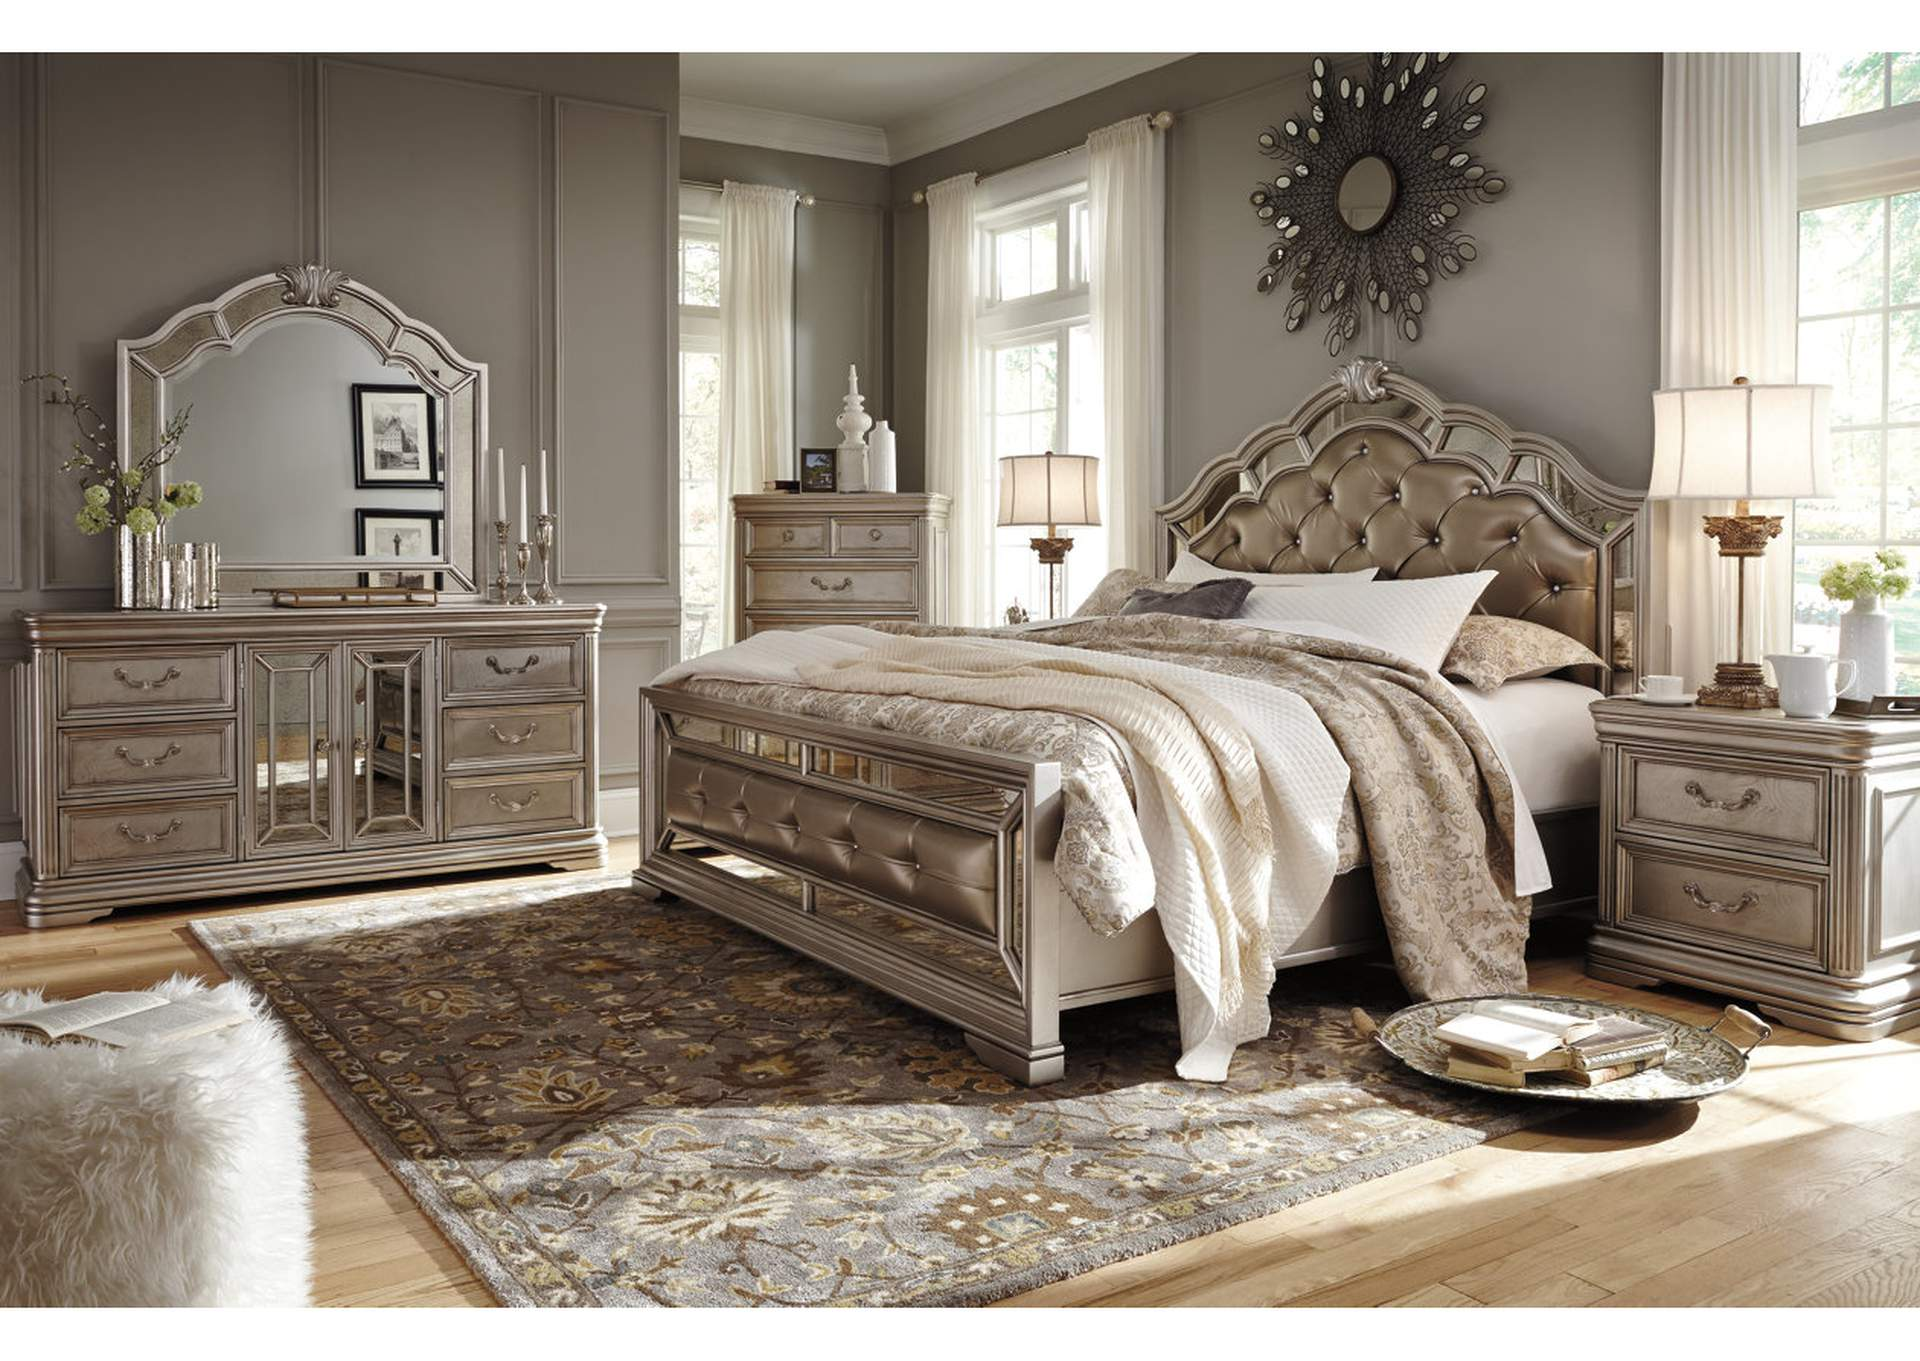 birlanny silver queen upholstered bed wdresser mirror nightstandsignature design by - Mirror Bed Frame